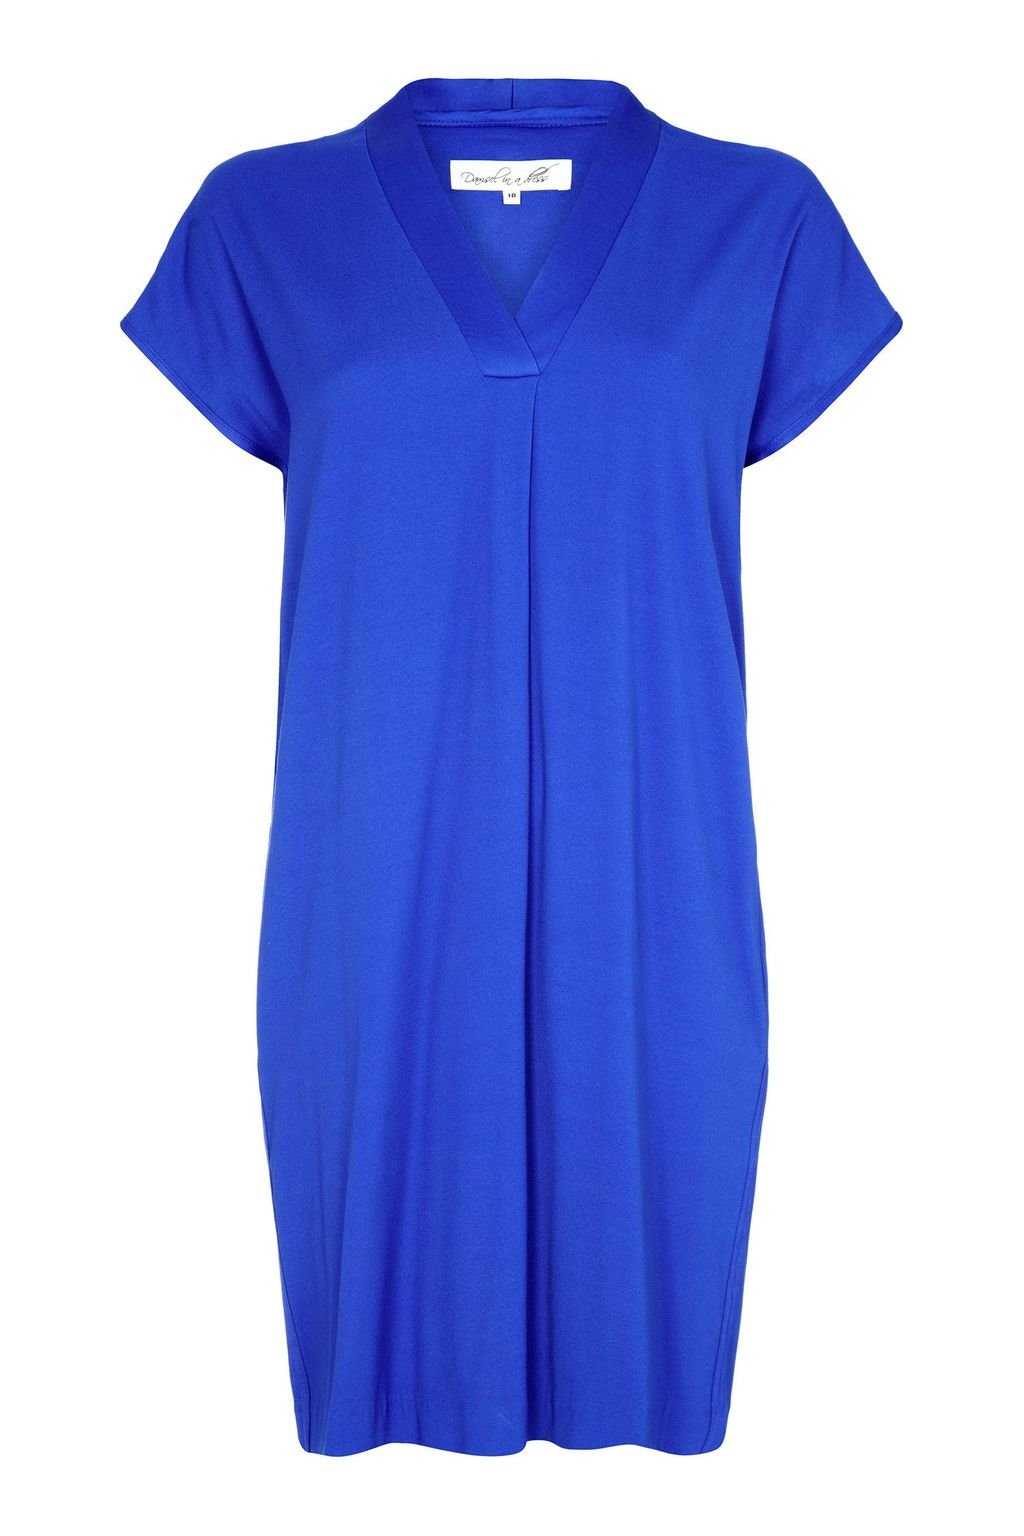 Bondi Dress, Blue - style: shift; neckline: v-neck; fit: loose; pattern: plain; predominant colour: royal blue; occasions: casual, evening; length: just above the knee; fibres: viscose/rayon - stretch; sleeve length: short sleeve; sleeve style: standard; pattern type: fabric; texture group: jersey - stretchy/drapey; season: s/s 2015